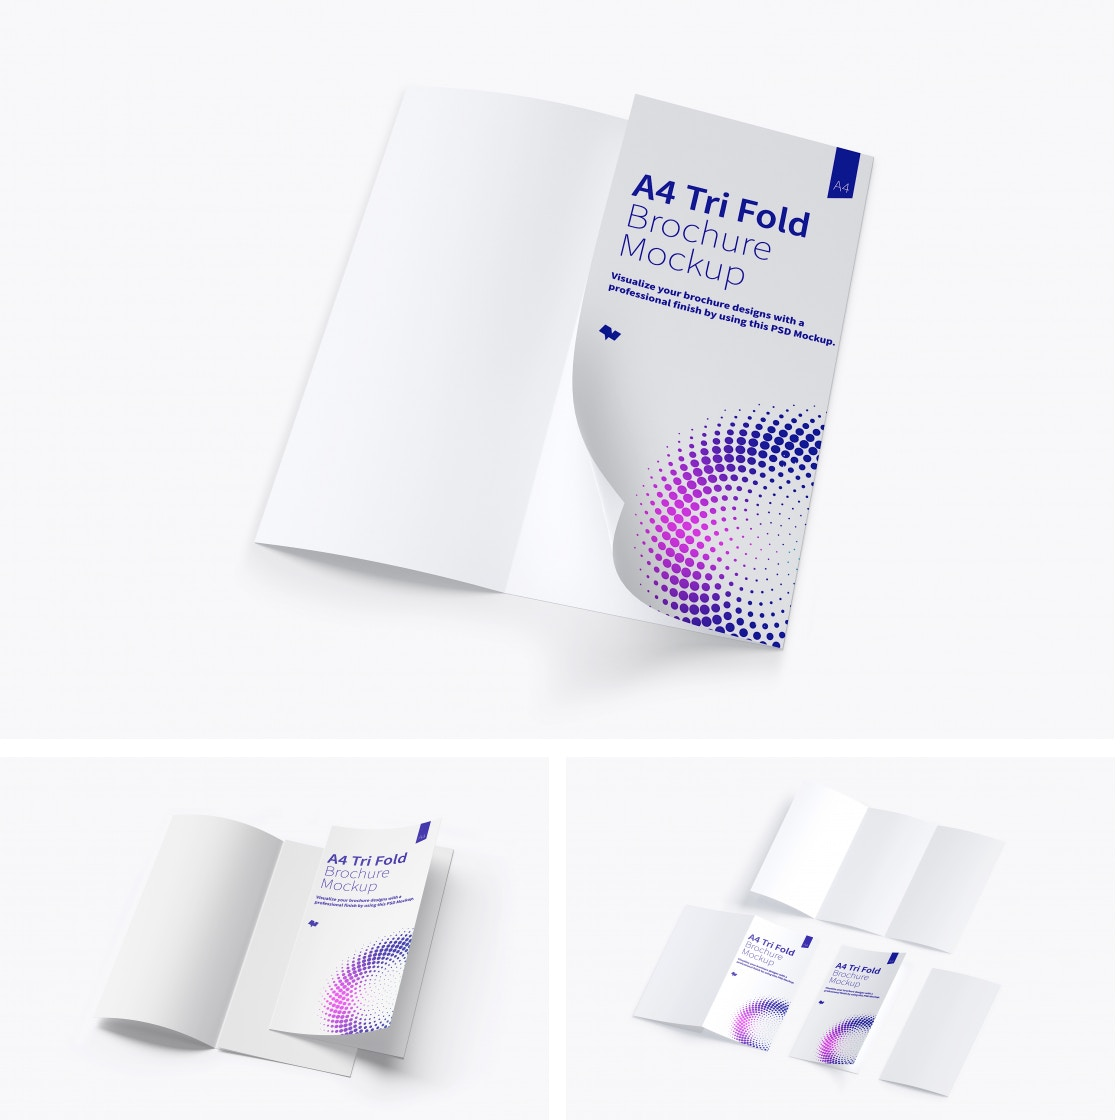 A4 Trifold Brochure Mockups by Original Mockups on Original Mockups